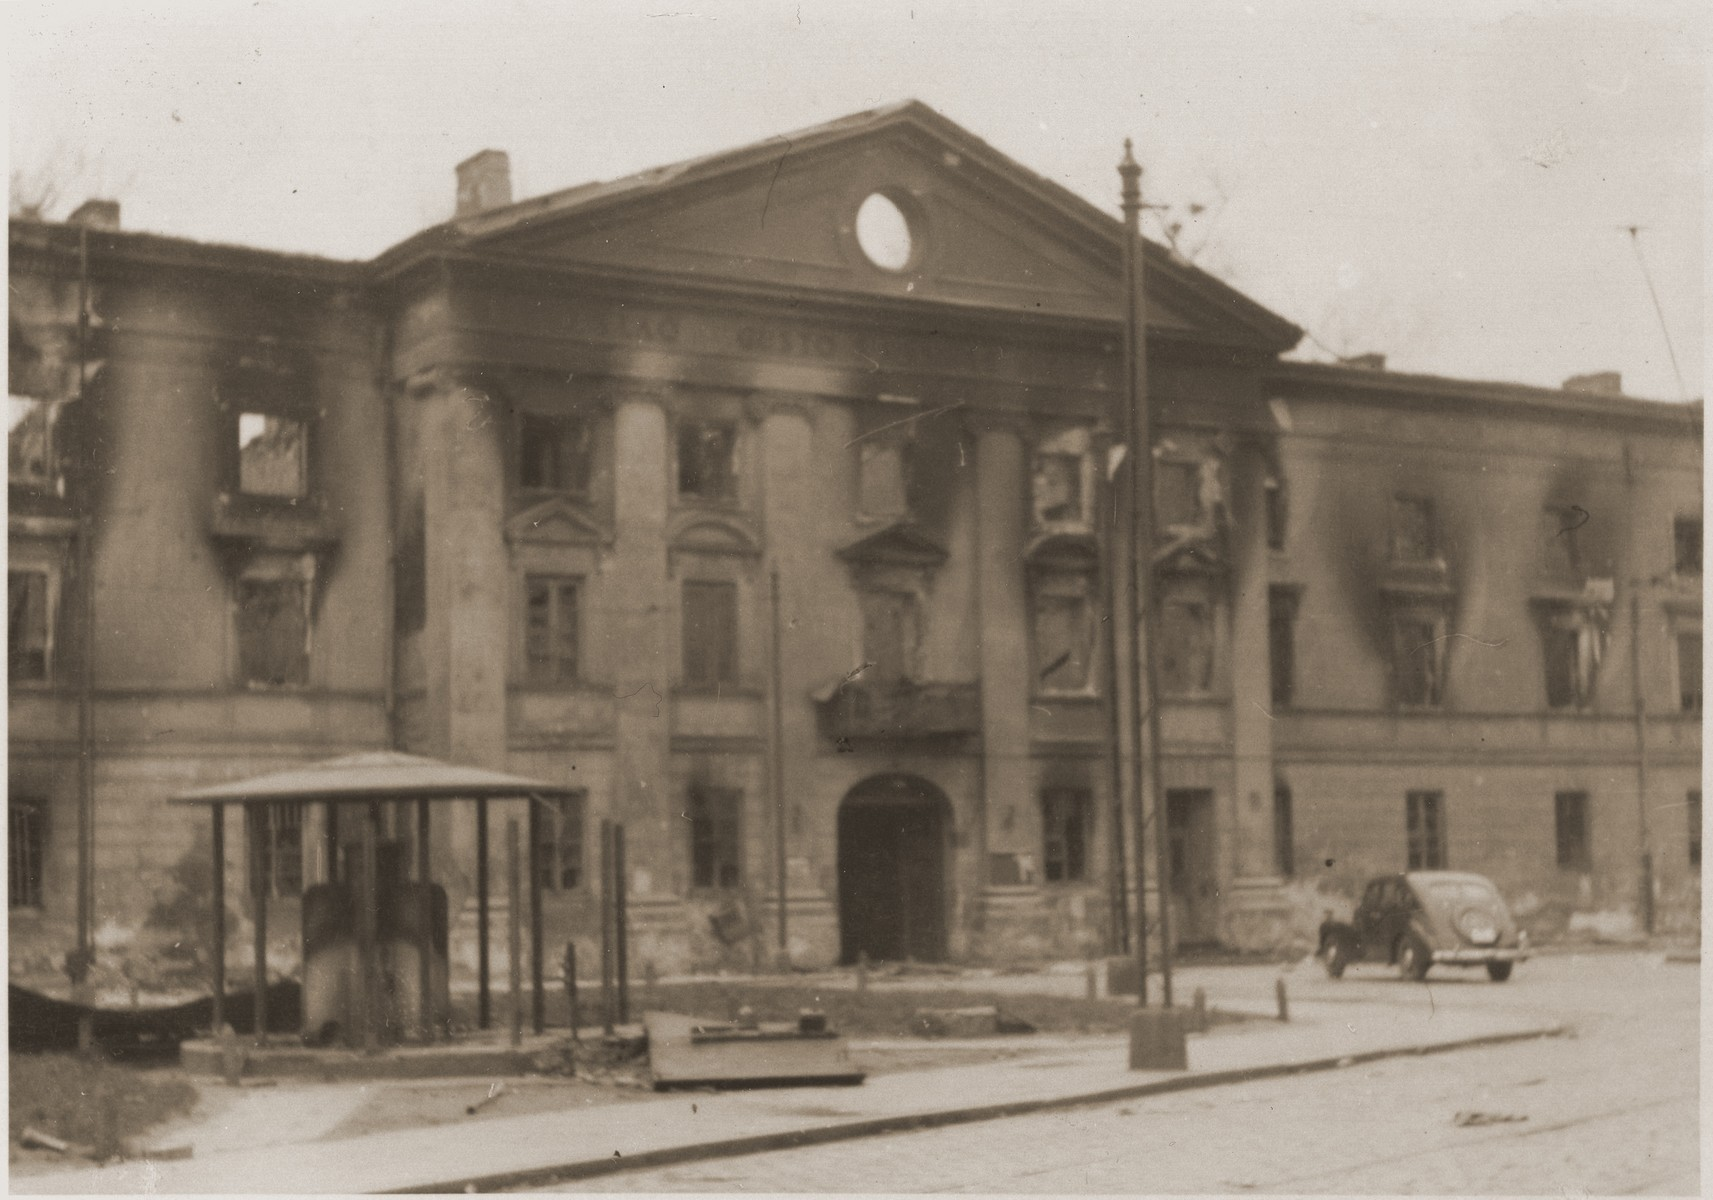 """The ruins of the former Warsaw ghetto Jewish Council building after its destruction by the SS during the ghetto uprising.  The original German caption reads """"The building of the former Jewish Council."""""""